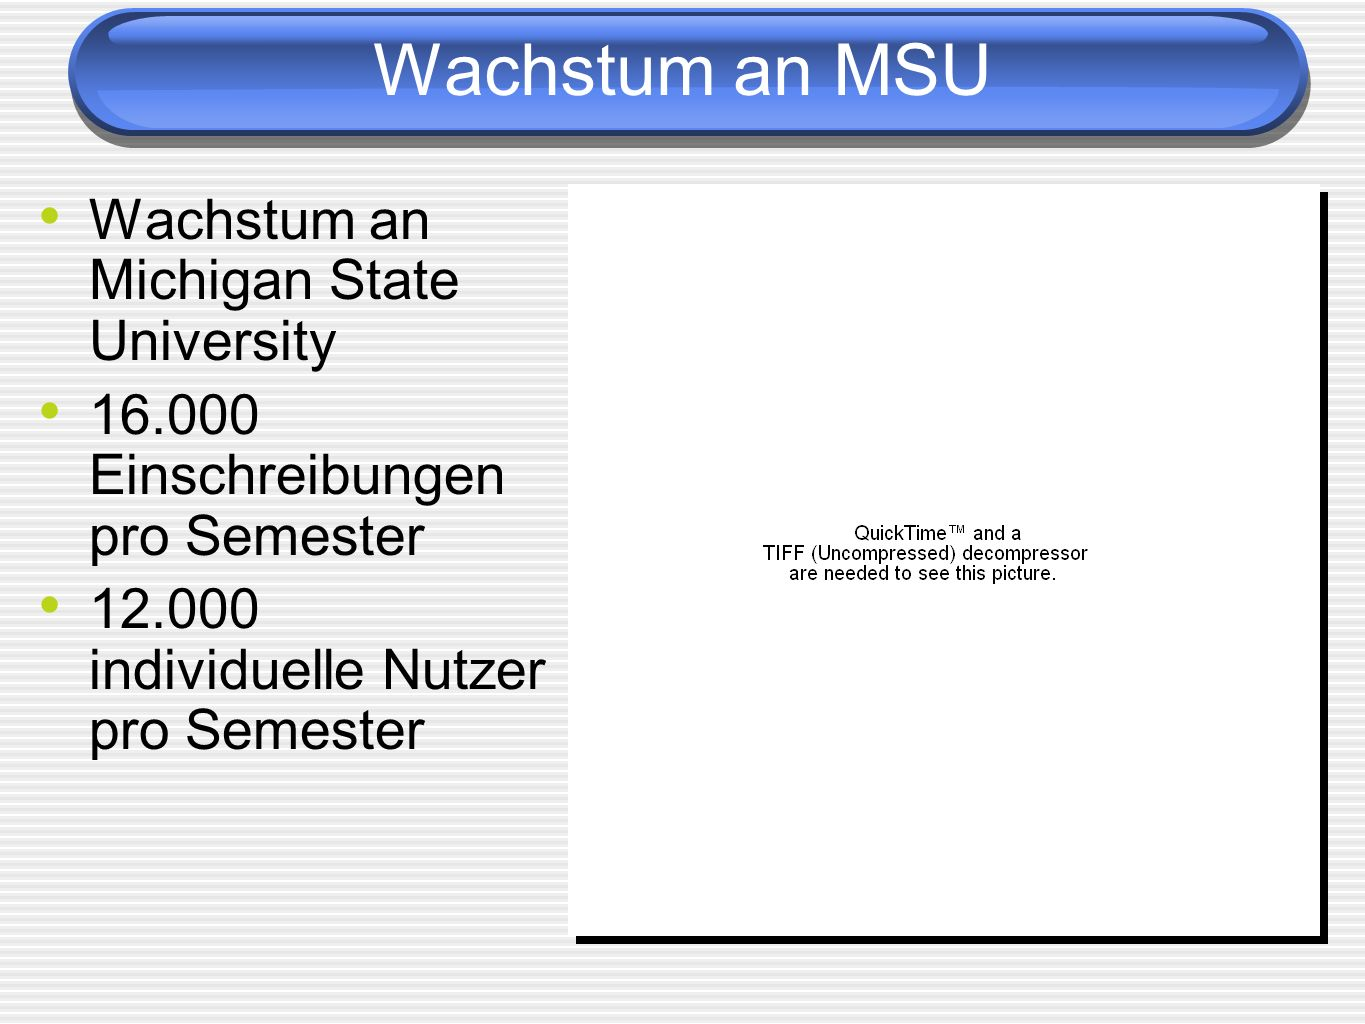 Wachstum an MSU Wachstum an Michigan State University